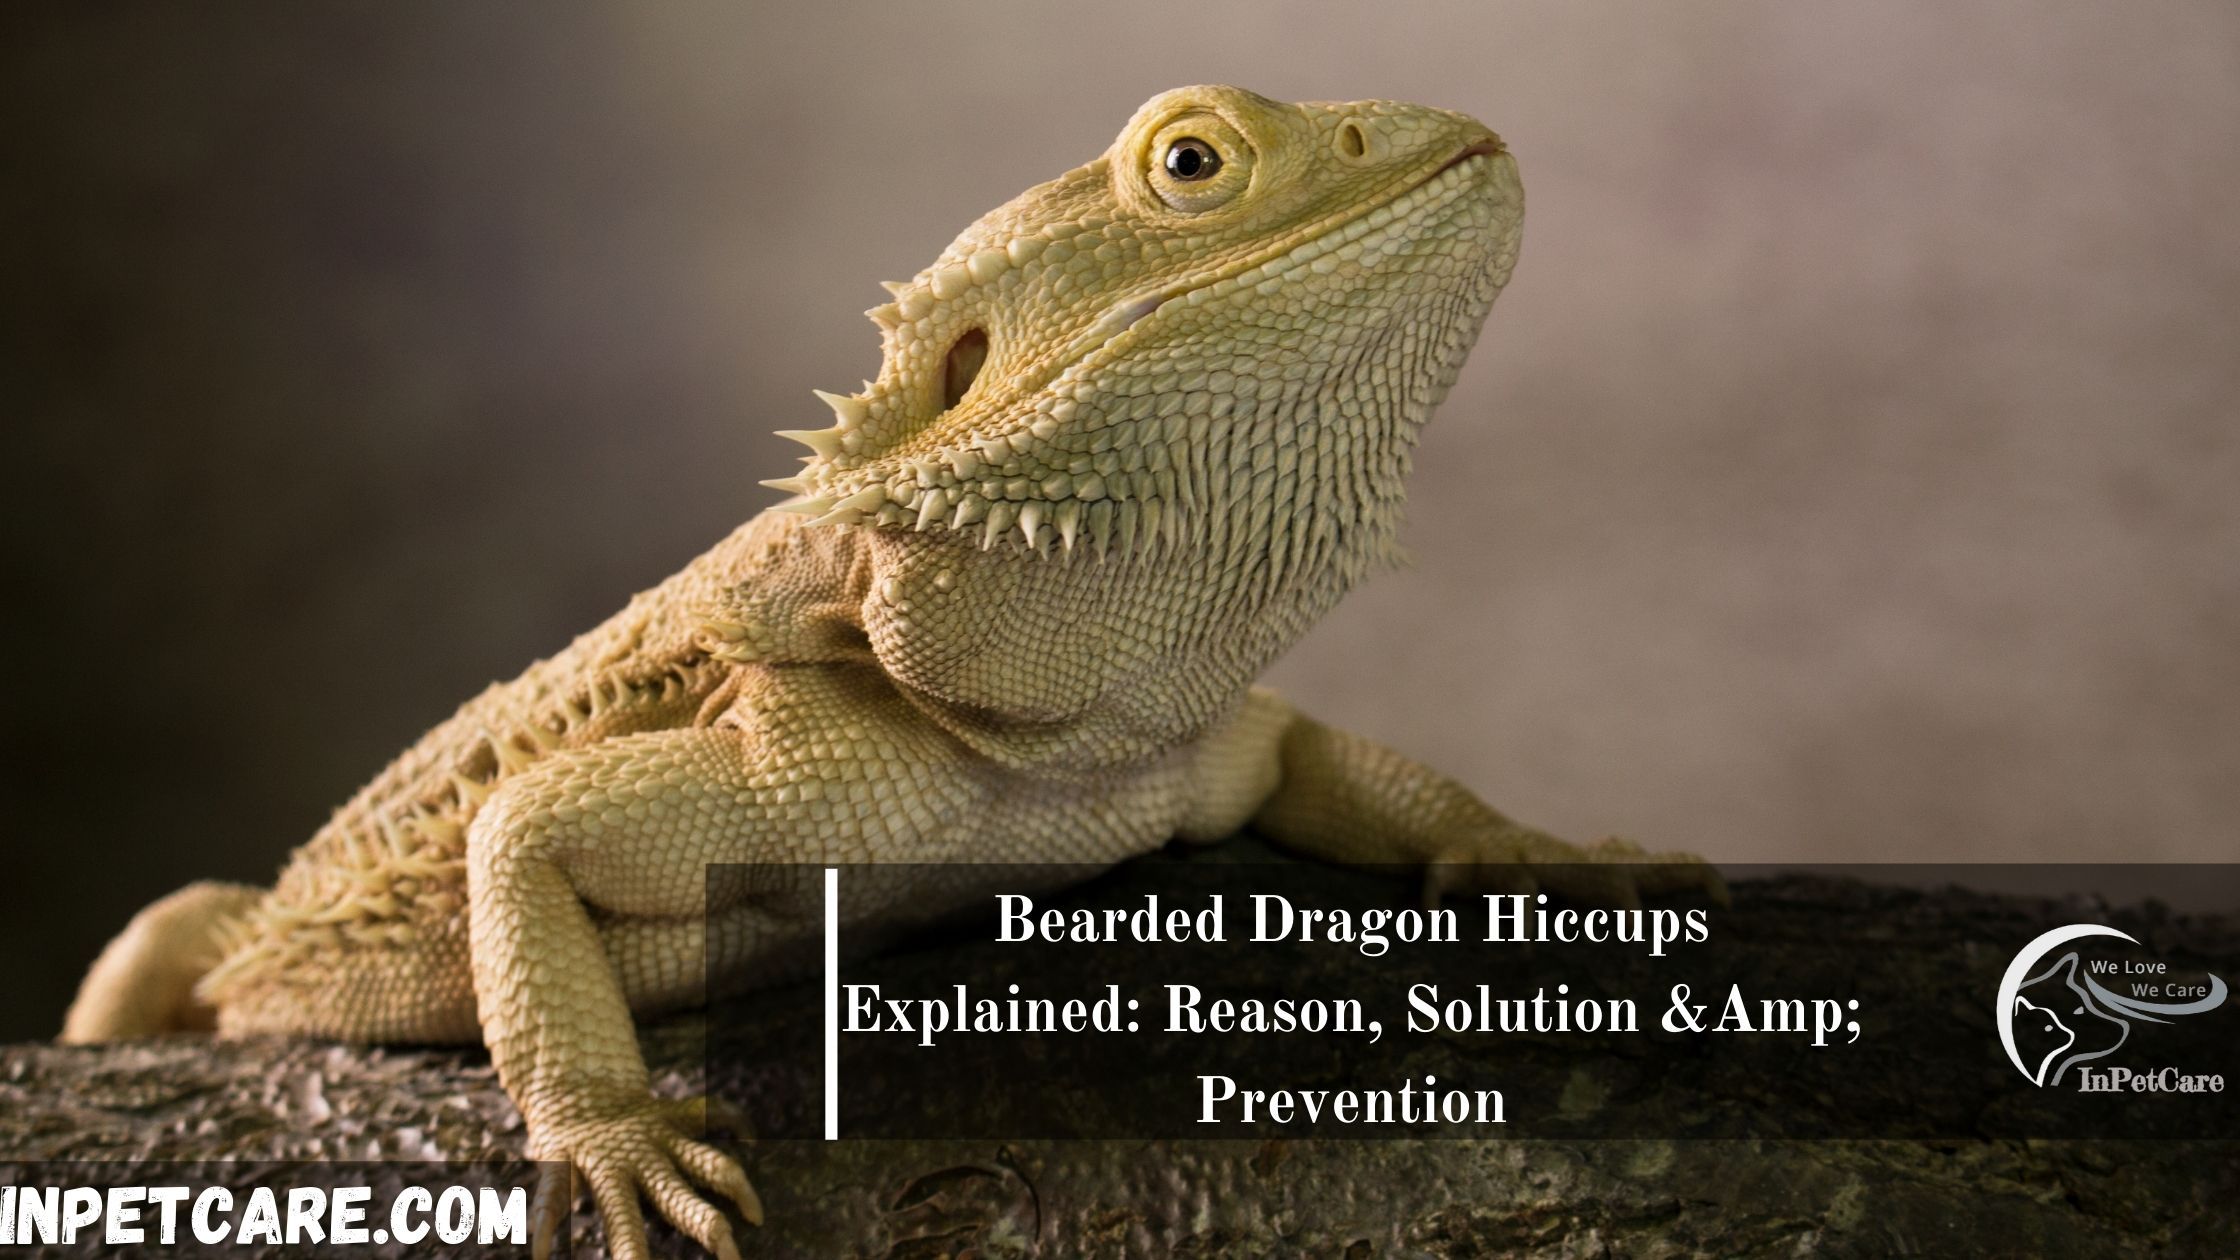 Bearded Dragon Hiccups: Reasons, Solution & Prevention